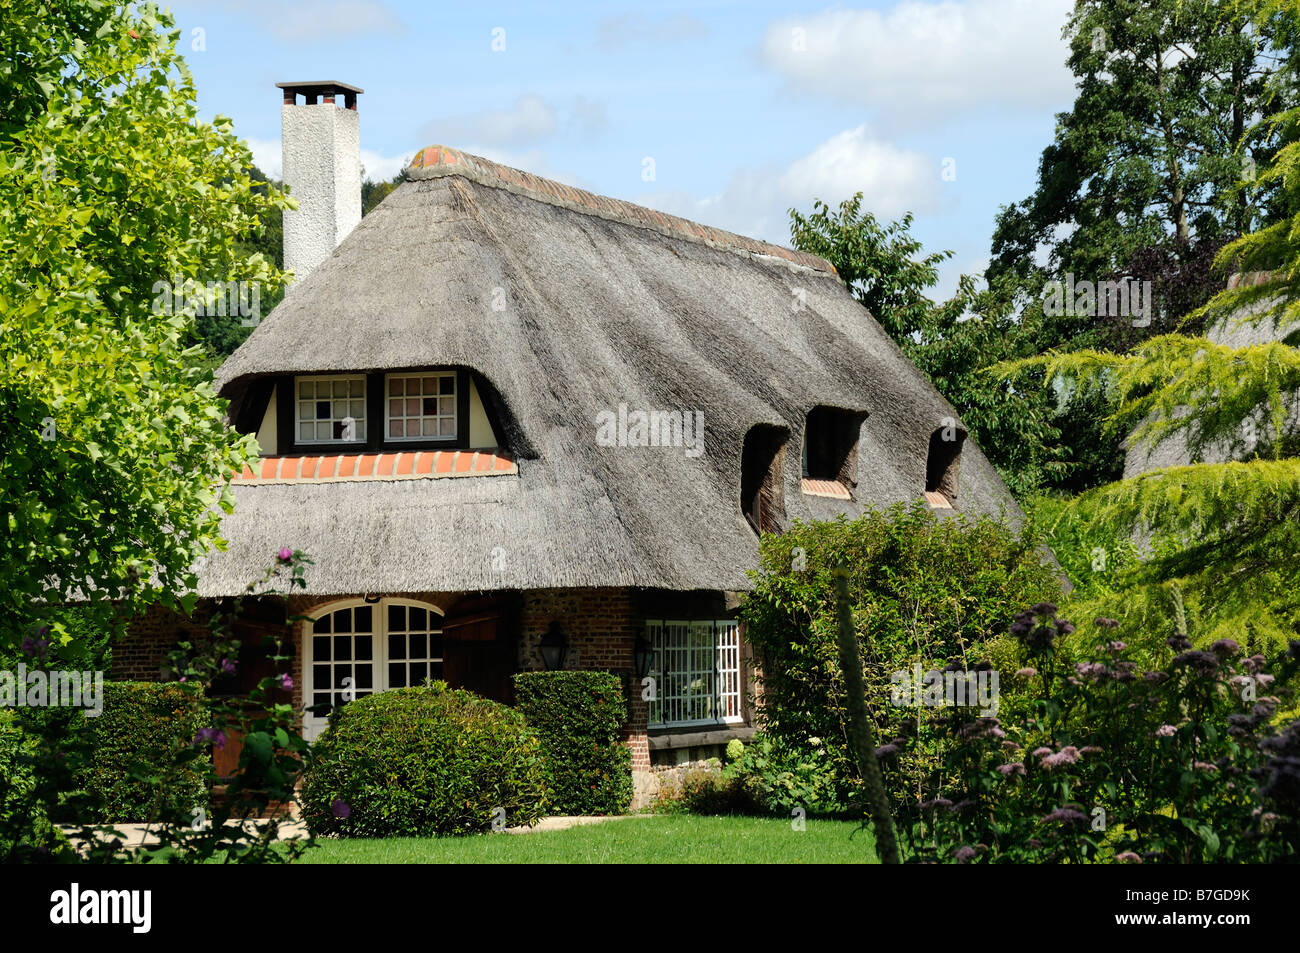 Straw Roof Garden High Resolution Stock Photography And Images Alamy